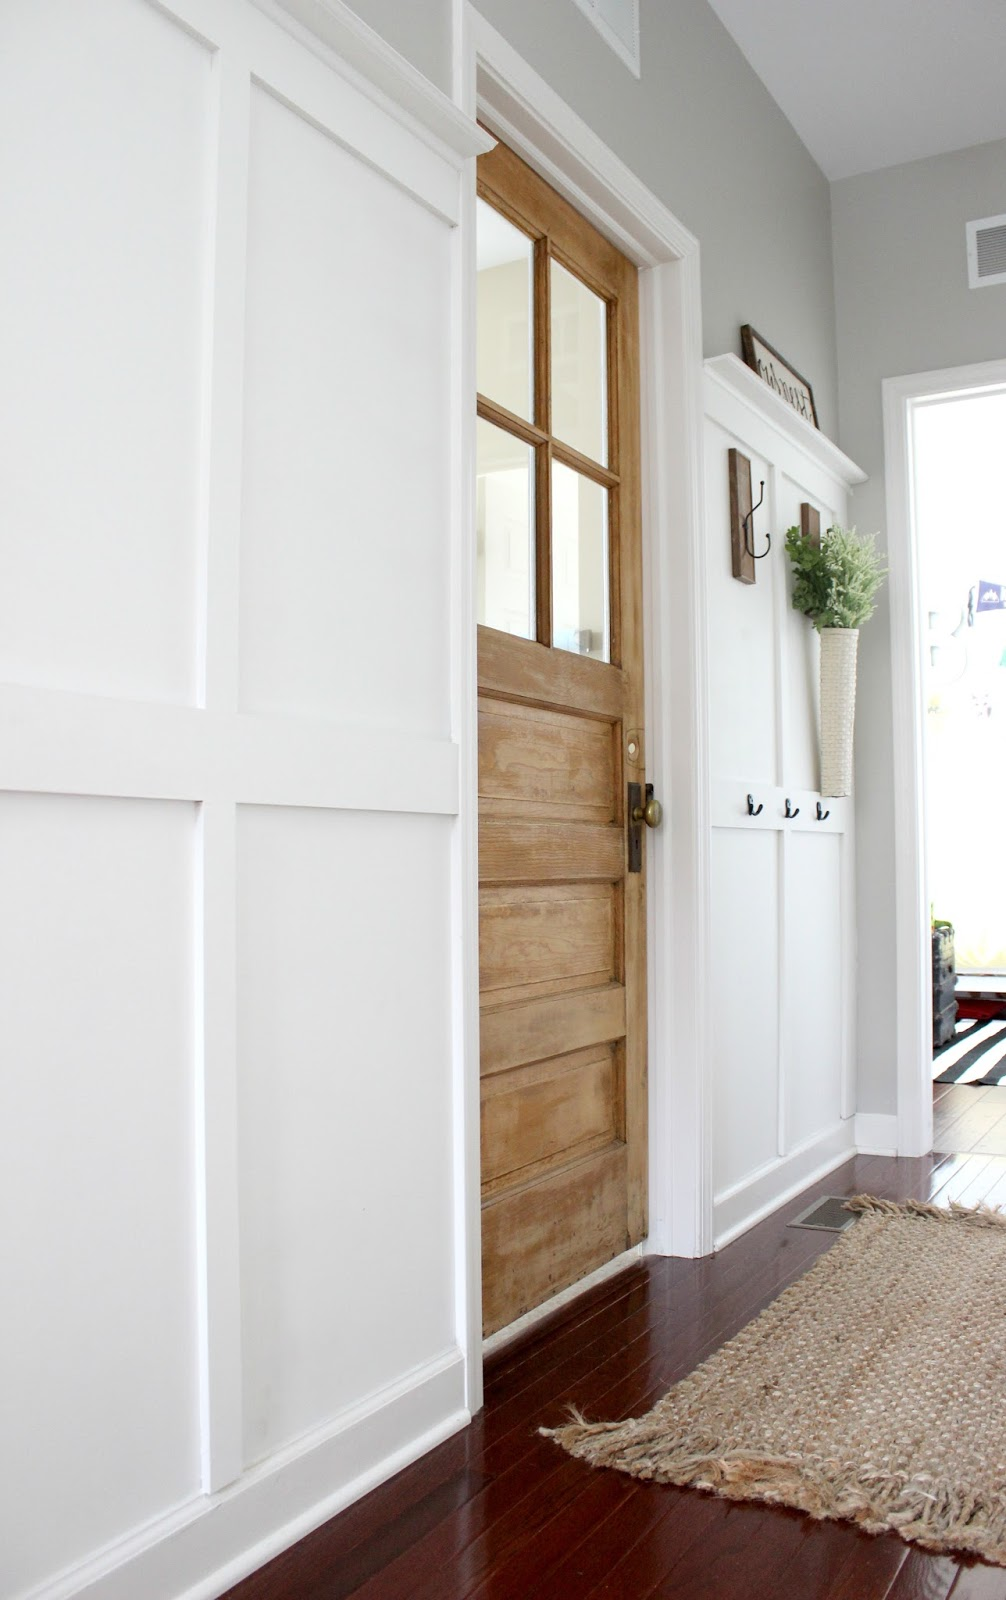 Delightfully Noted Home Tour - Vintage Salvage Wood Door Laundry Room Entry - Board and Batten Wall Treatment - Modern Farmhouse Decorating Ideas